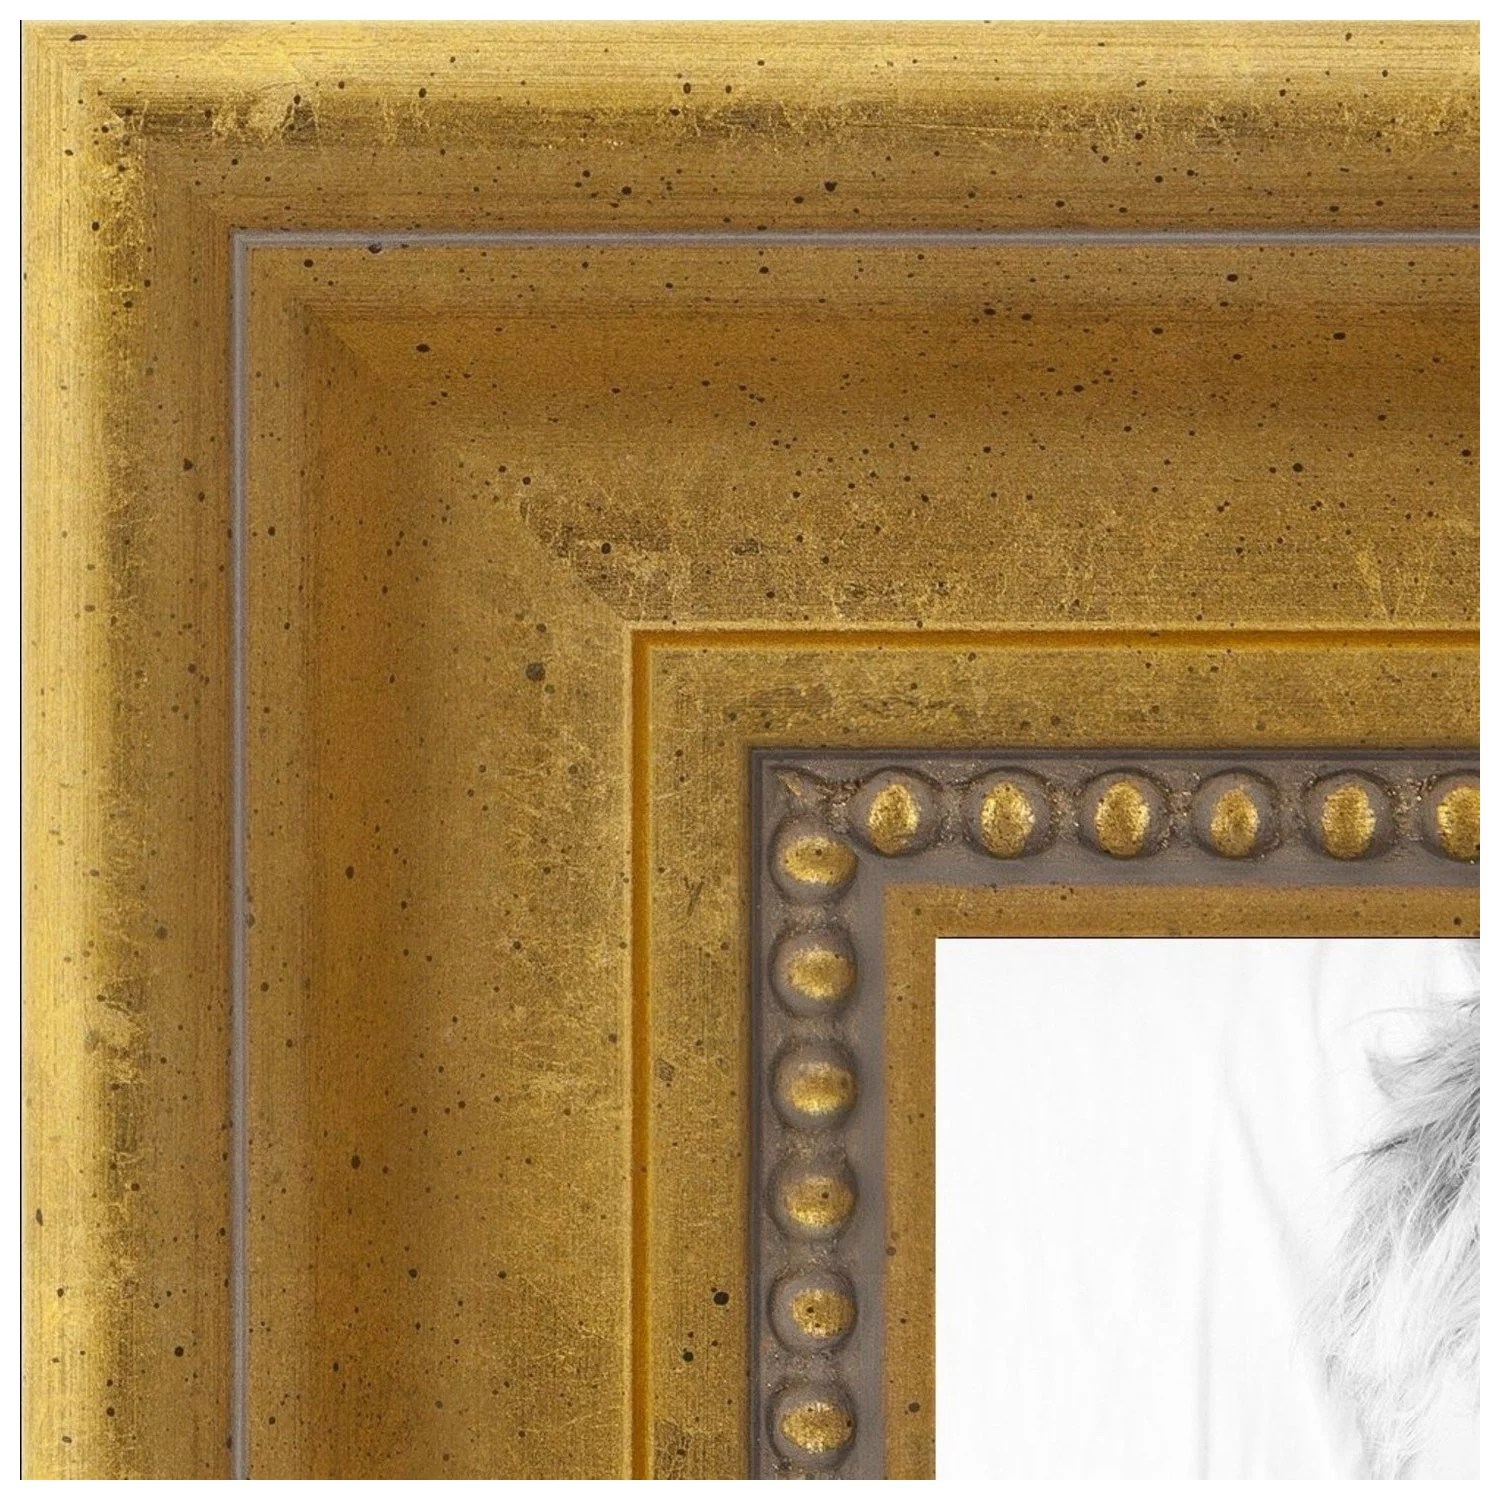 arttoframes 20x30 inch gold picture frame this gold wood poster frame is great for your art or photos comes with 060 plexi glass 2035